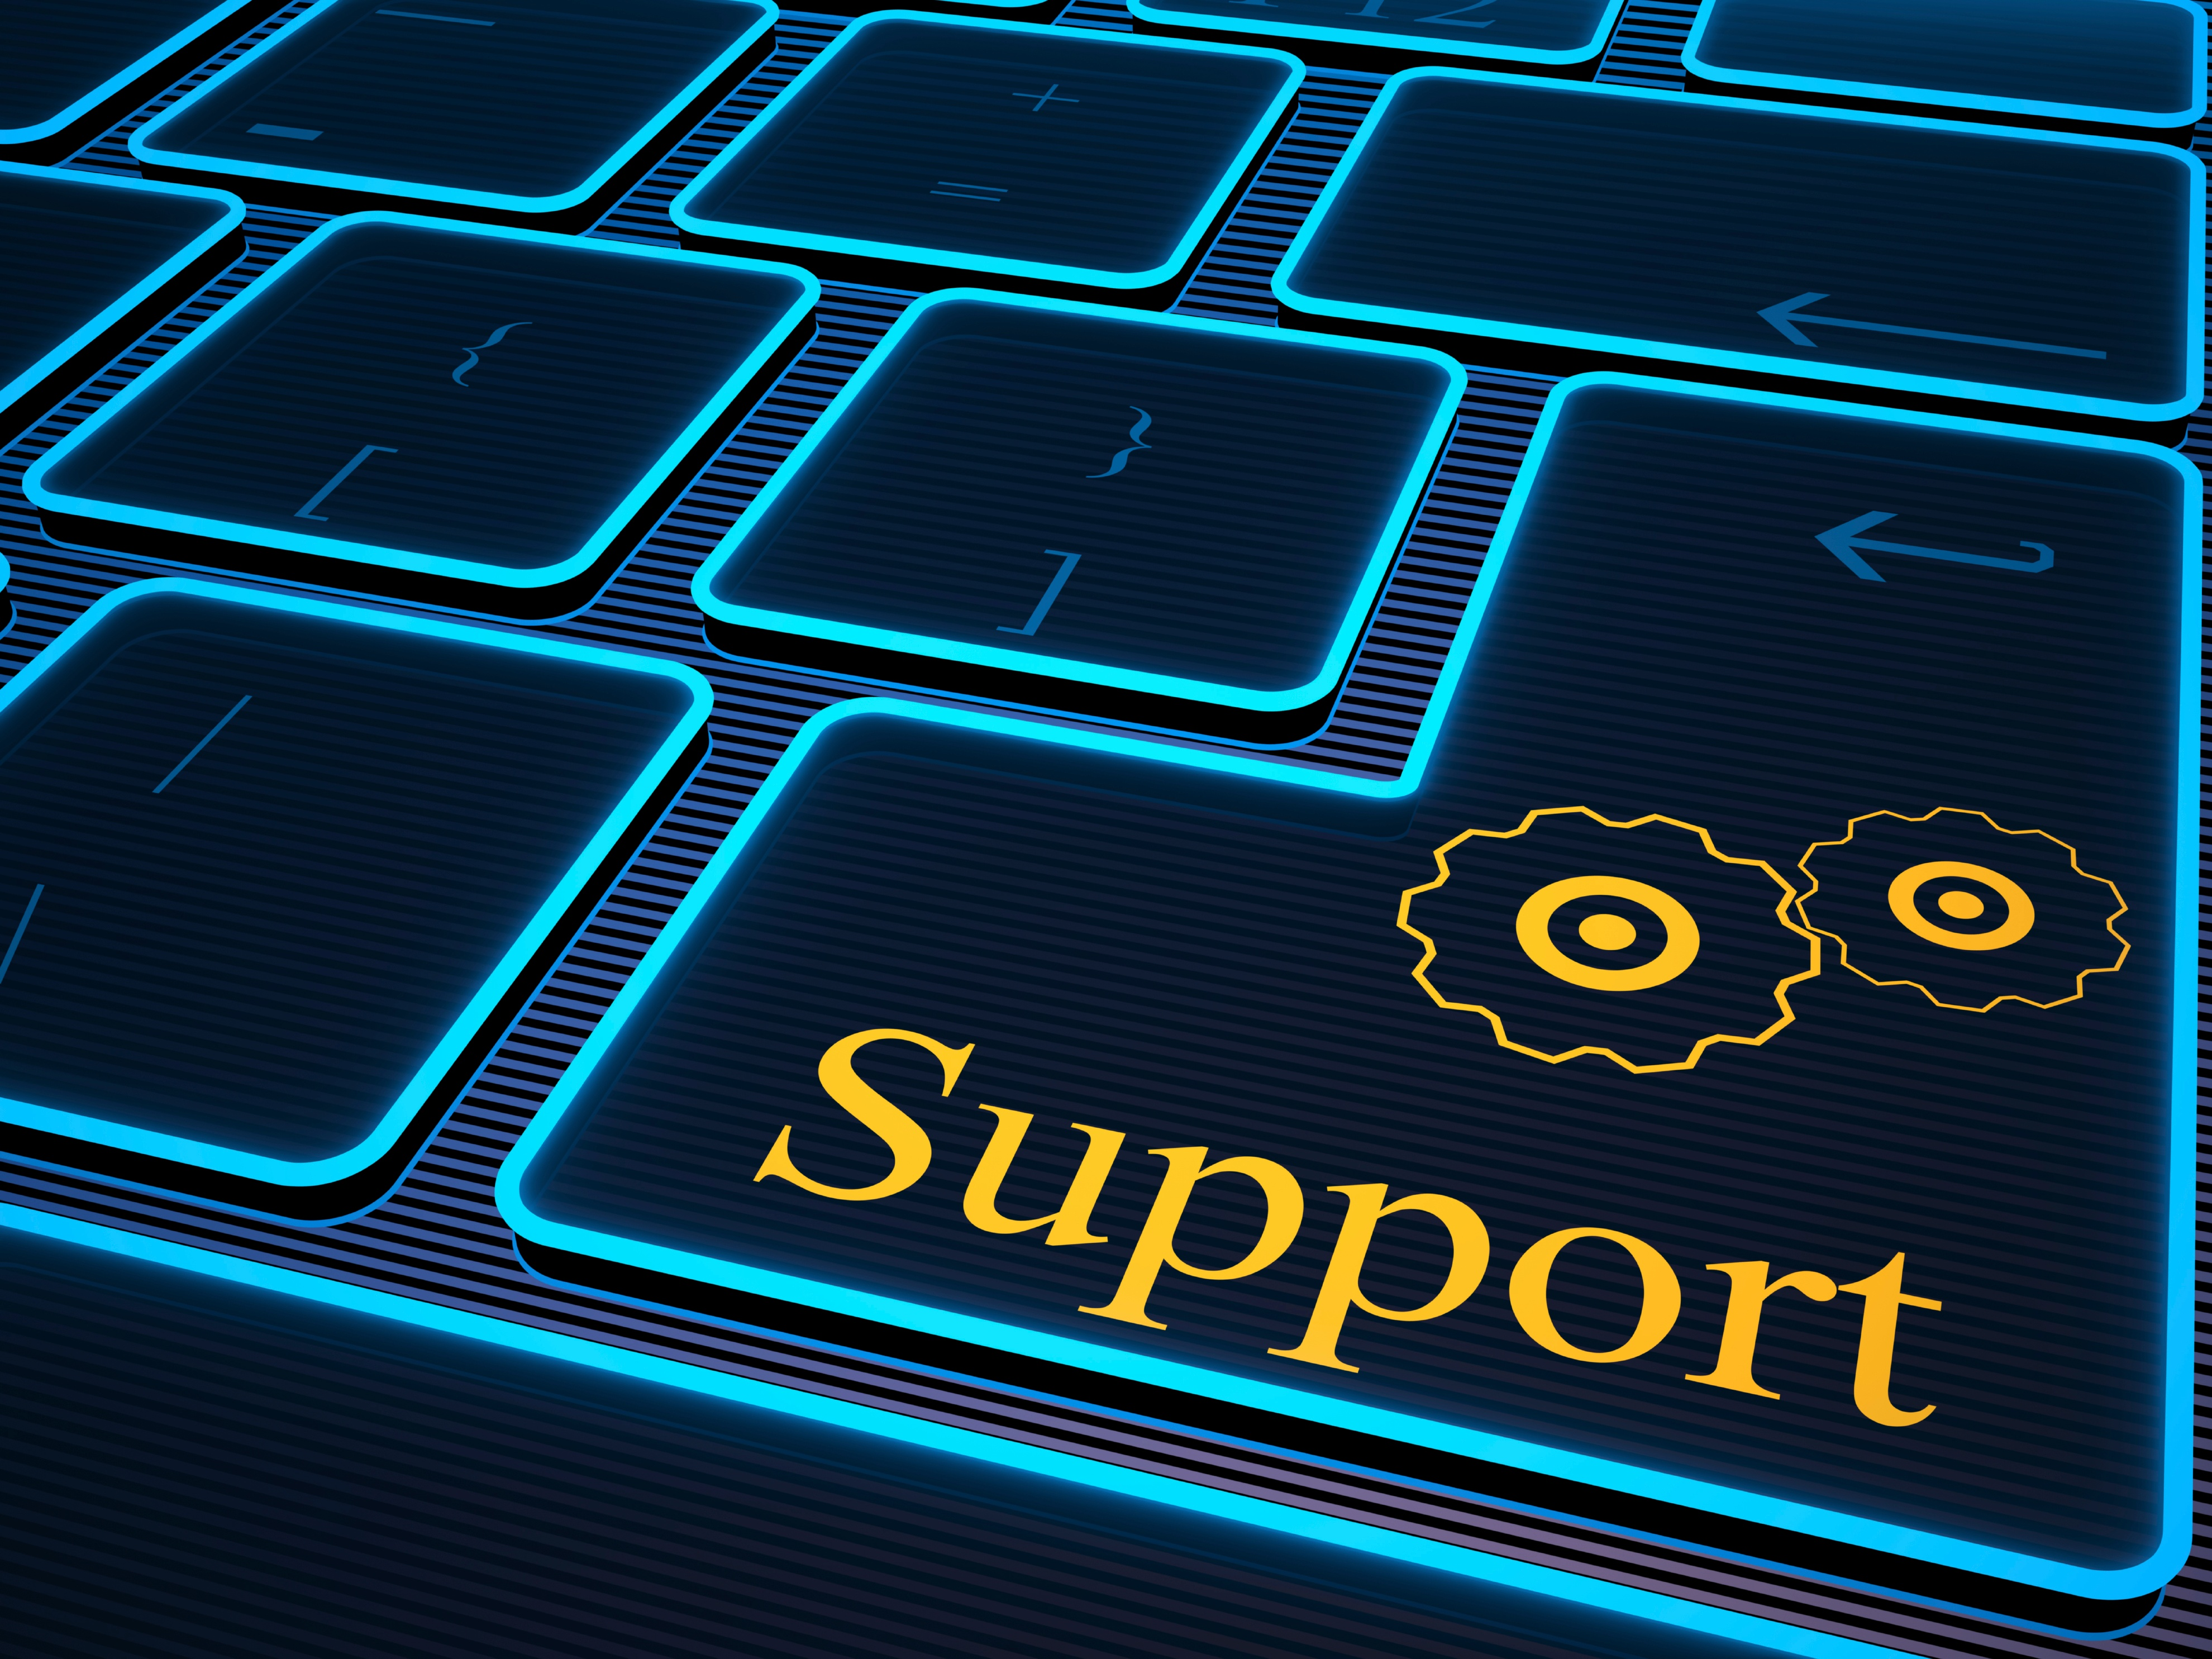 SADA Systems Announces Enterprise Support Services: Premium Cloud Support and Managed Services